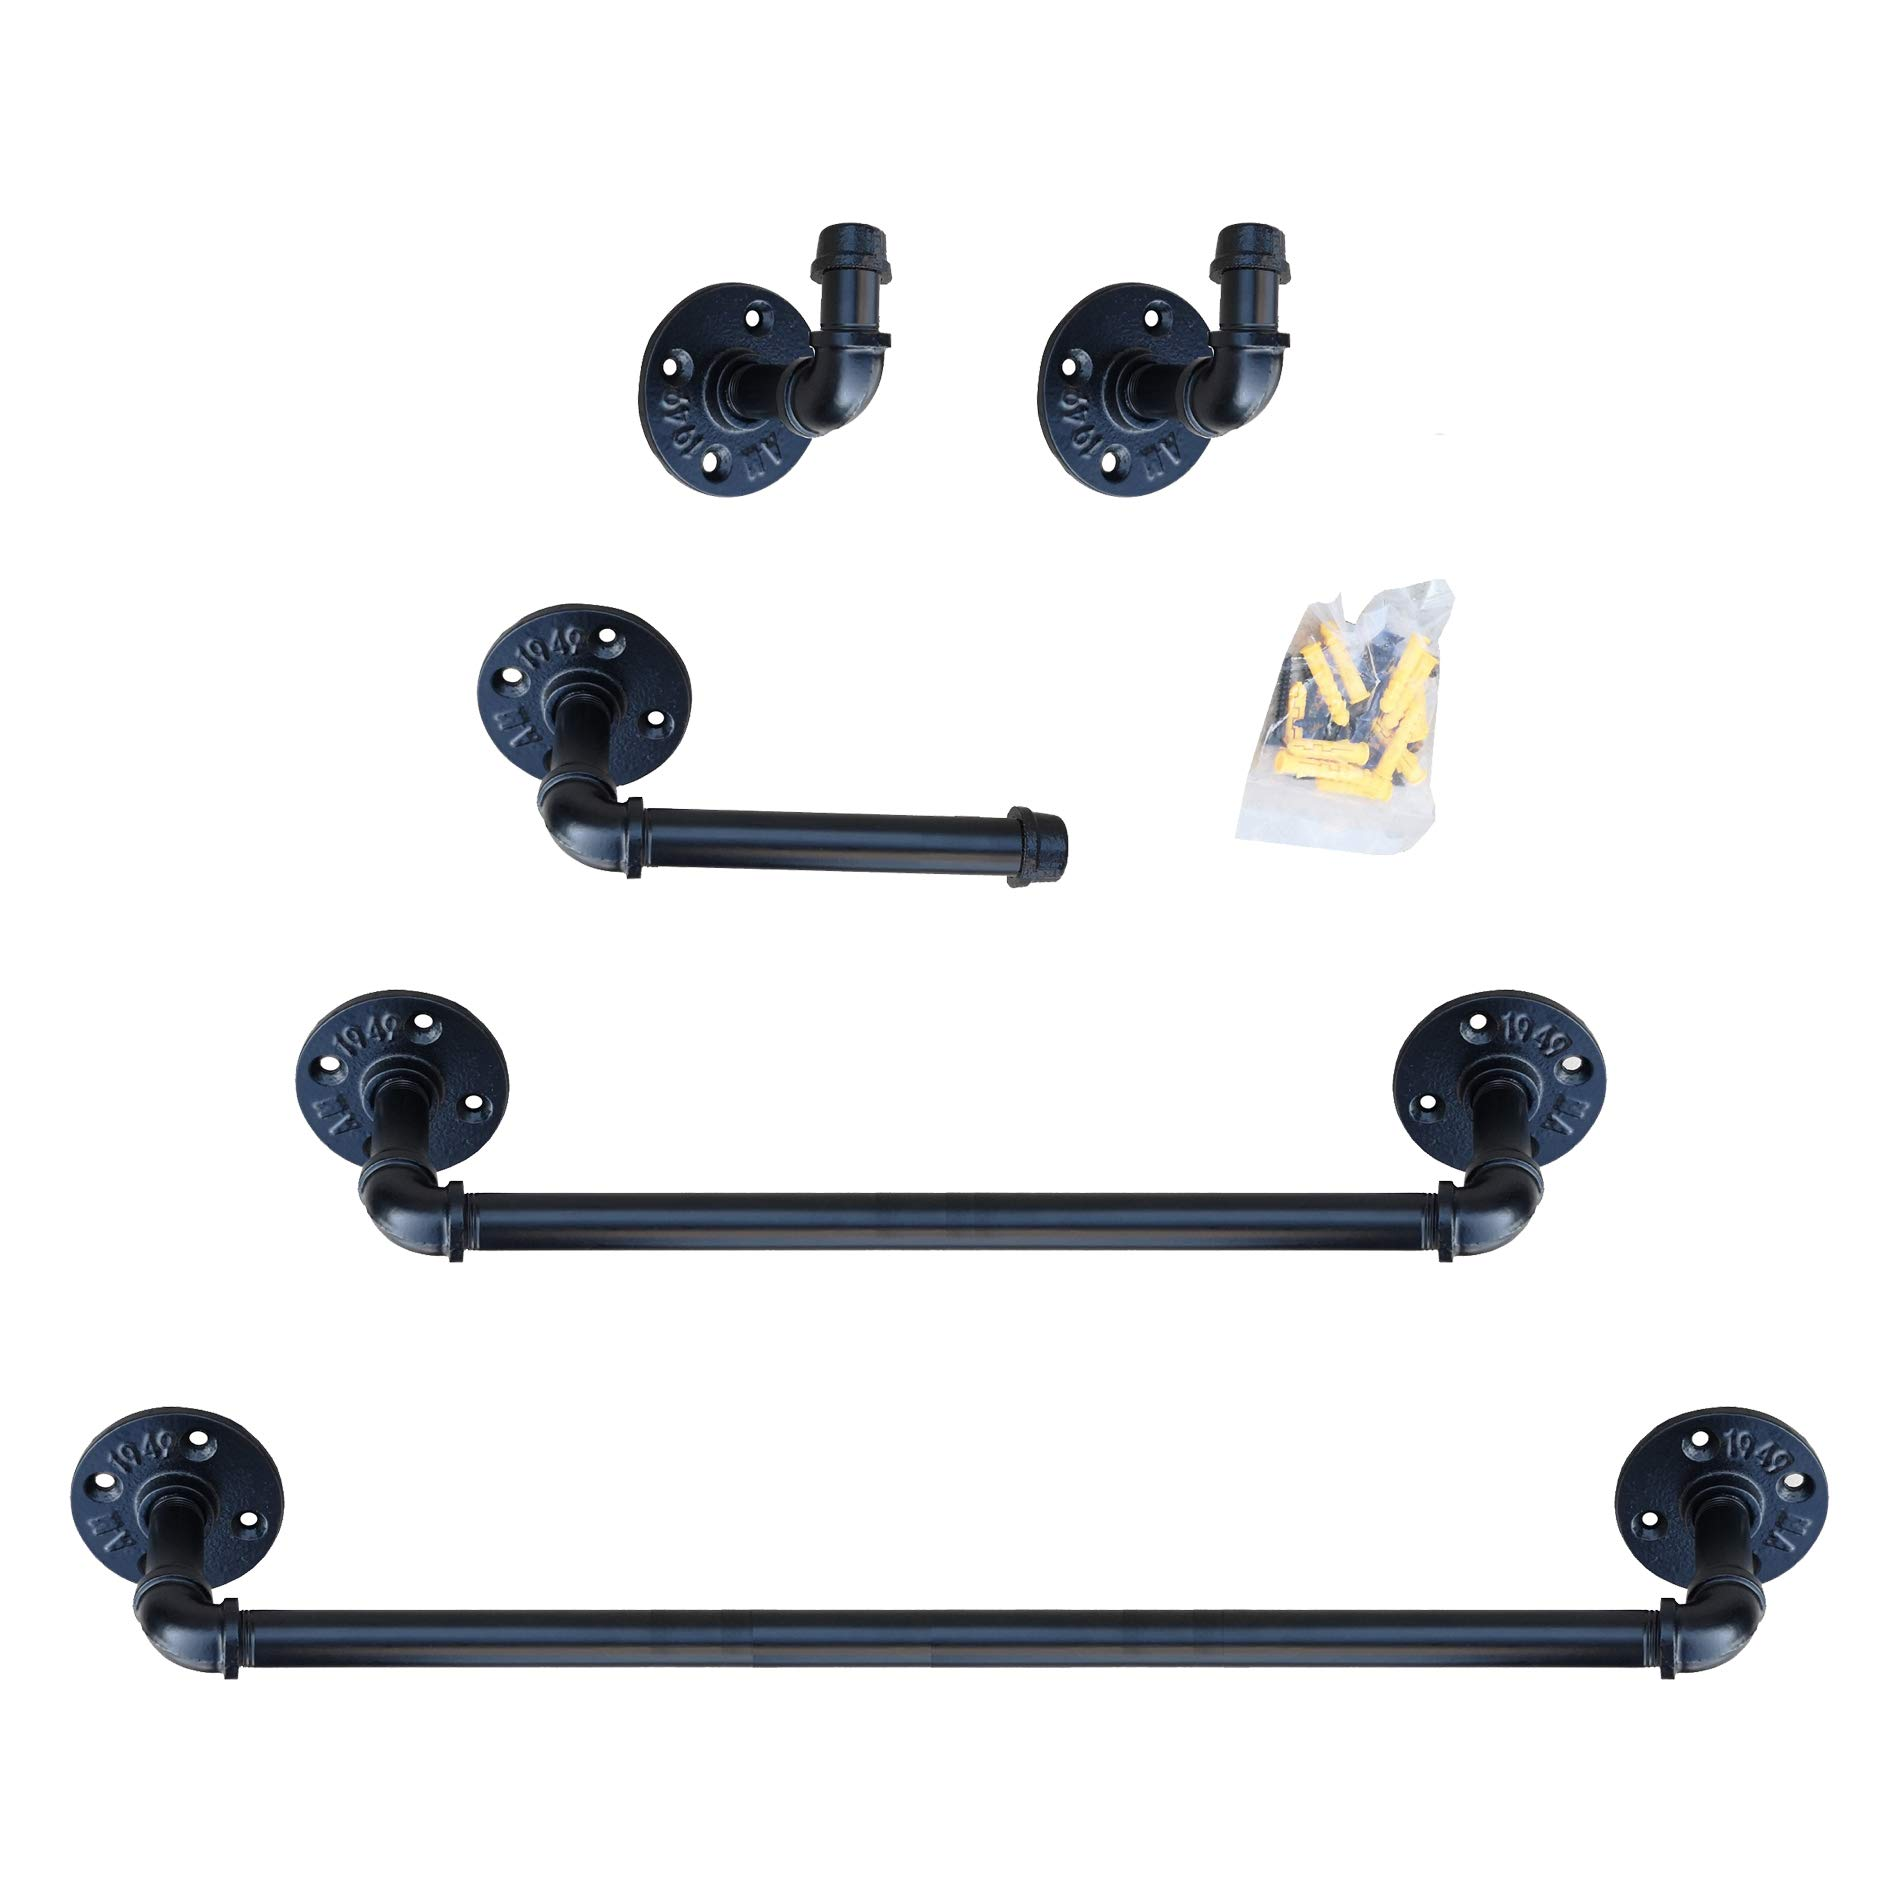 Industrial Pipe Bathroom Hardware Fixture Set | Bathroom Accessories Set - 5-Piece Kit Includes Robe Hook, 24 & 18 Inch Bath Pipe Towel Rack Bar and Toilet Paper Holder,Coated Finish